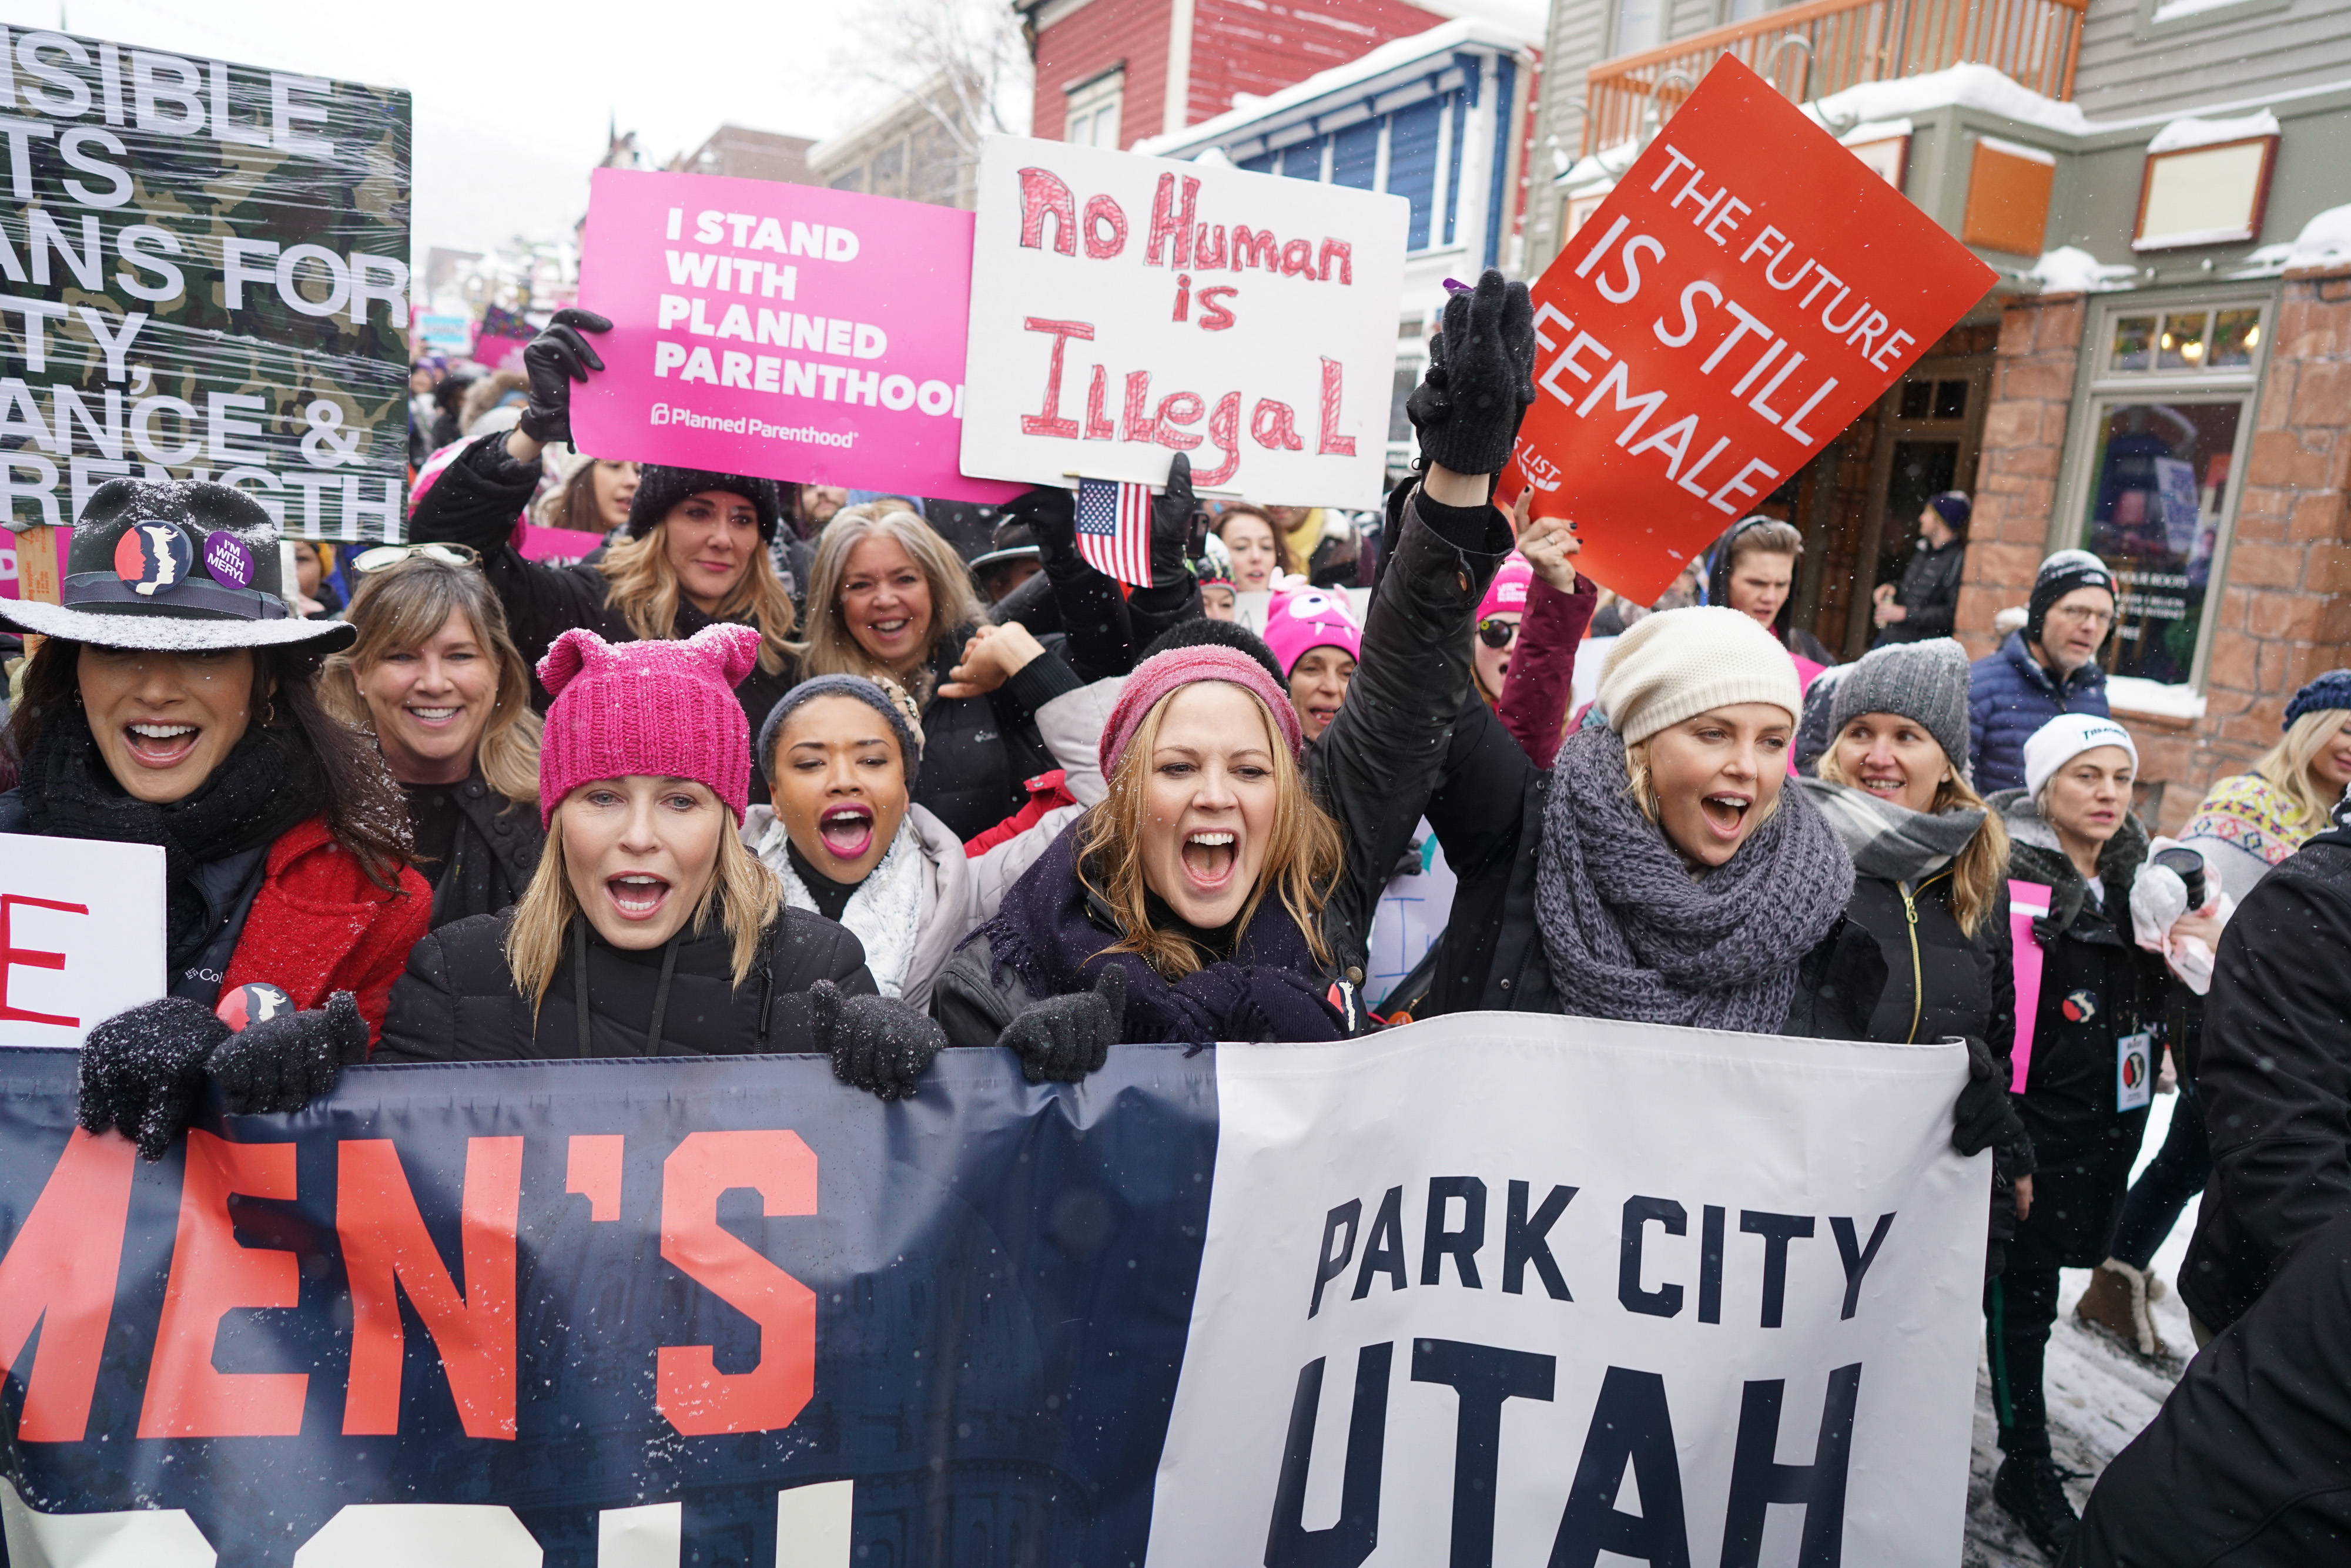 Jennifer Beals, Chelsea Handler, Mary McCormack and Charlize Theron at the Women's March Sundance Film Festival